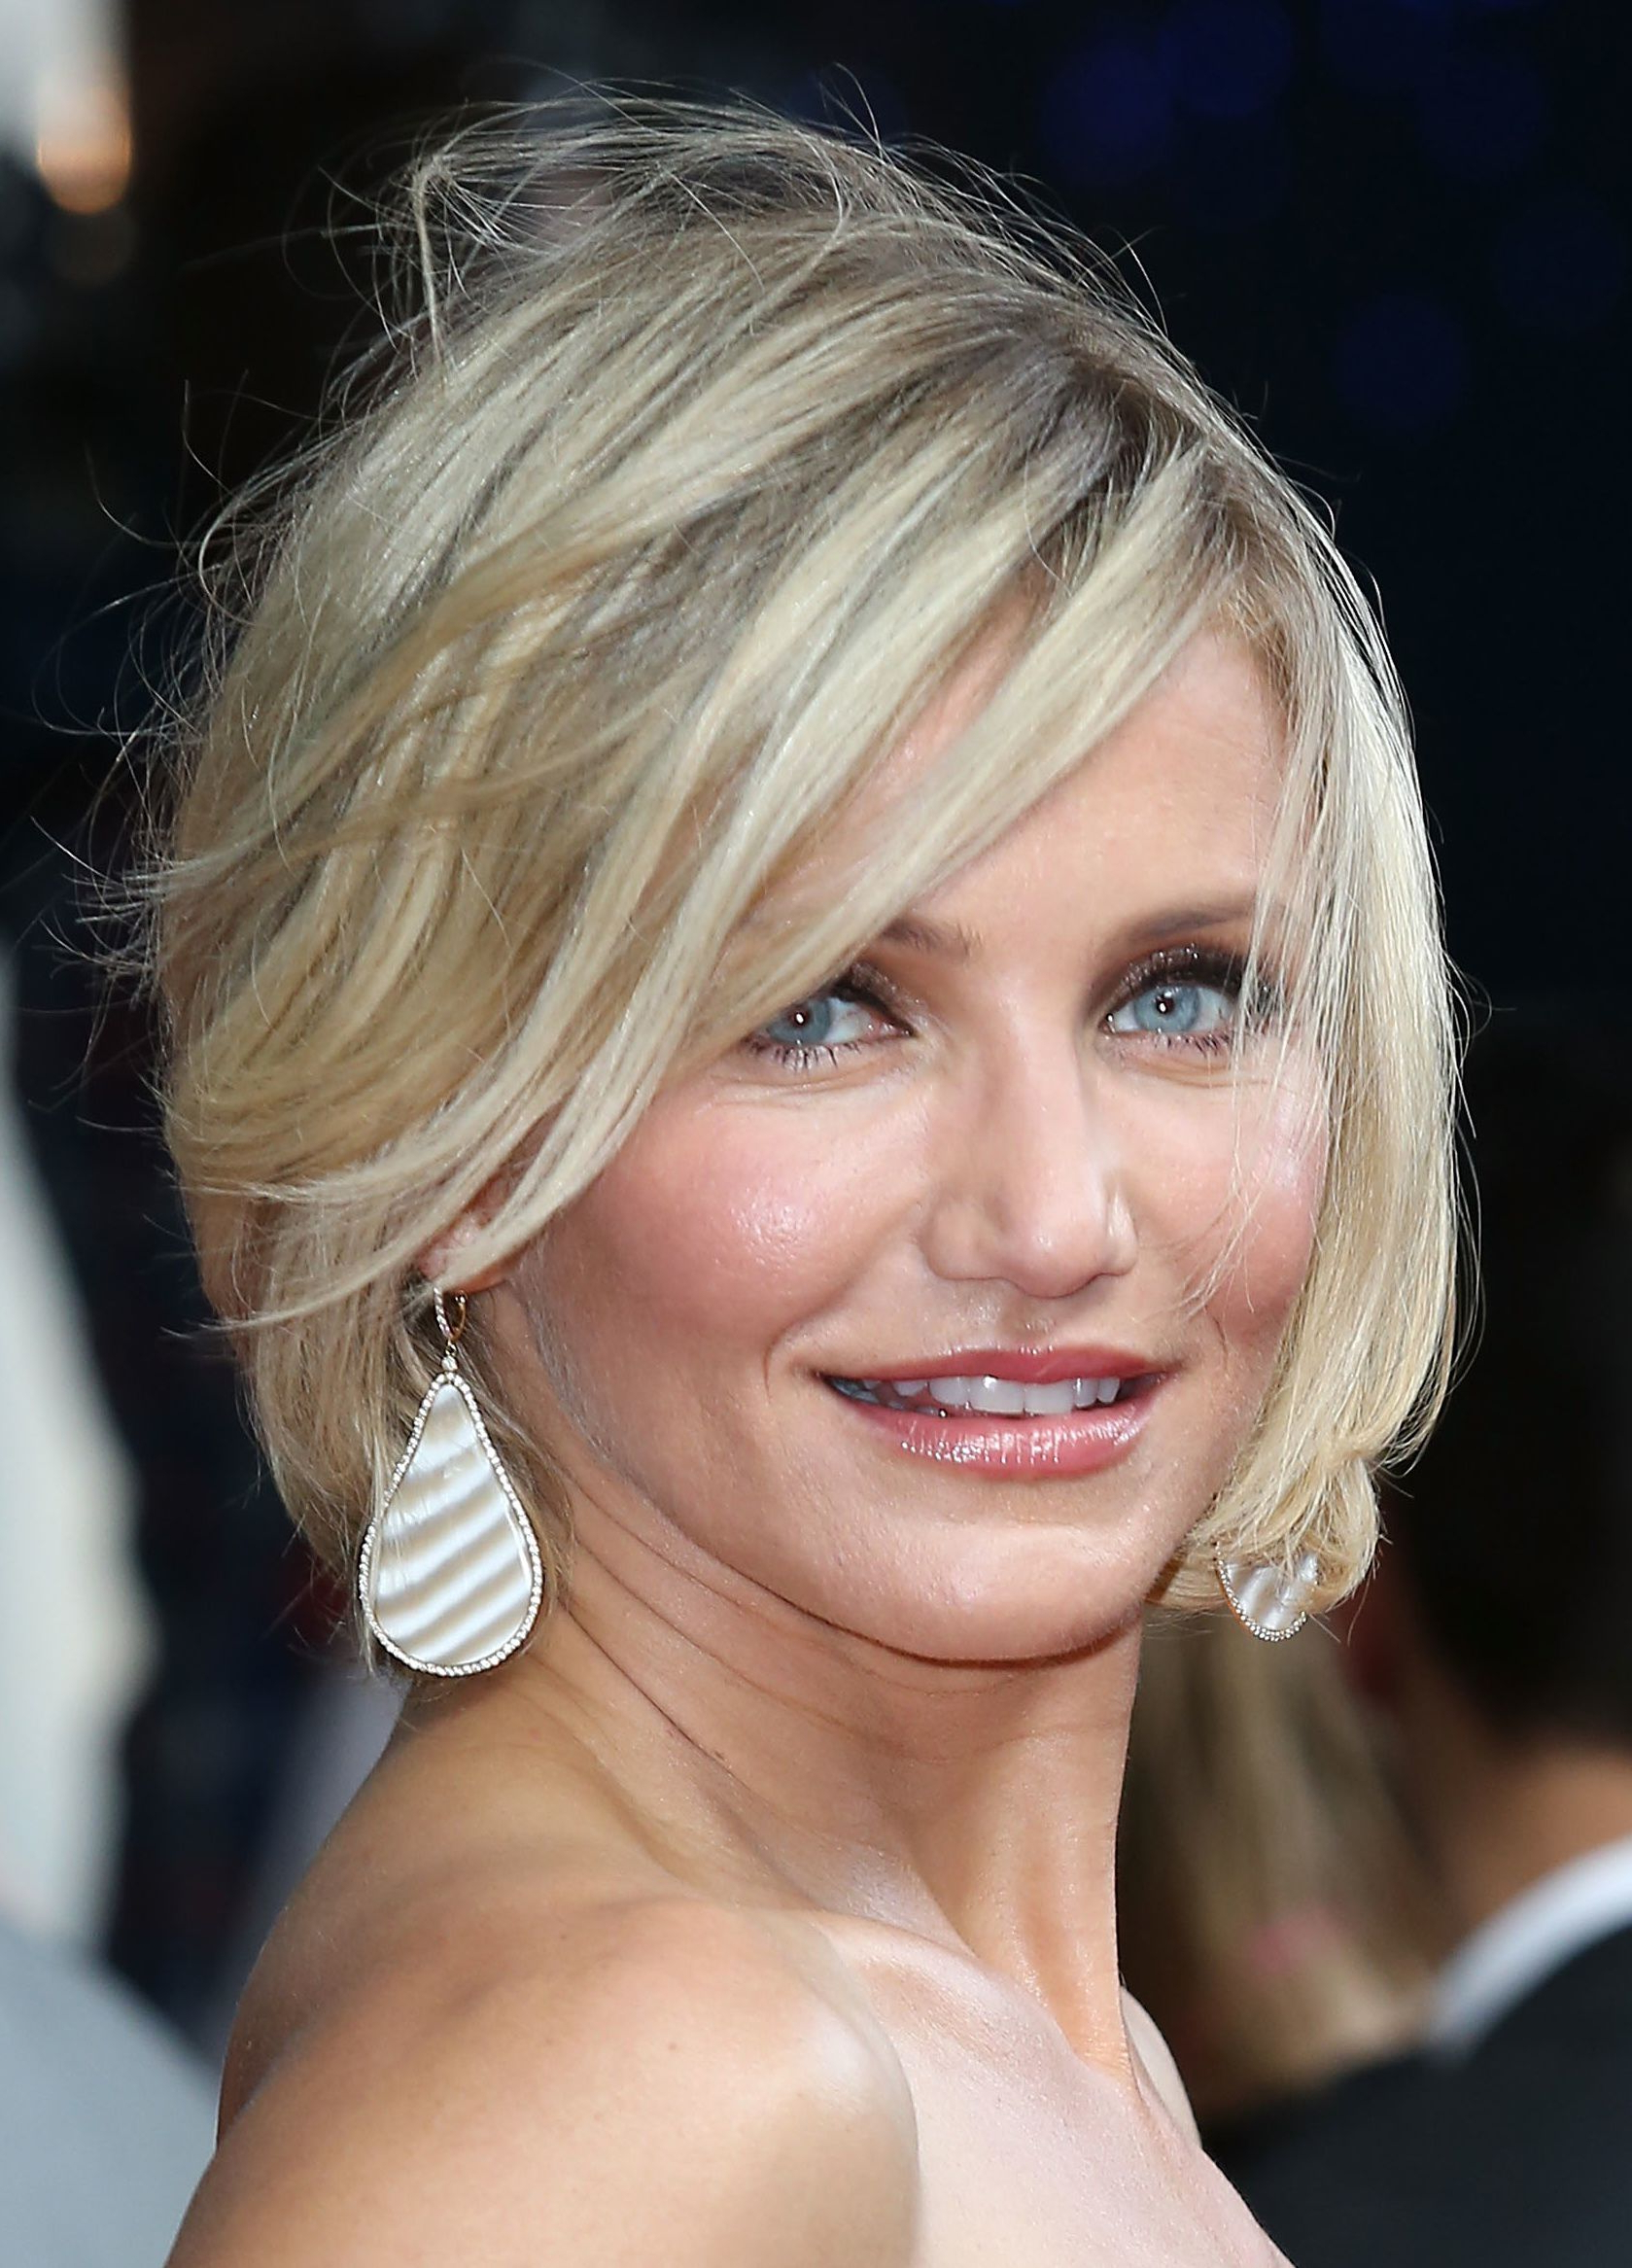 22 Inspiring Short Haircuts For Every Face Shape For Special Occasion Short Hairstyles (View 3 of 25)